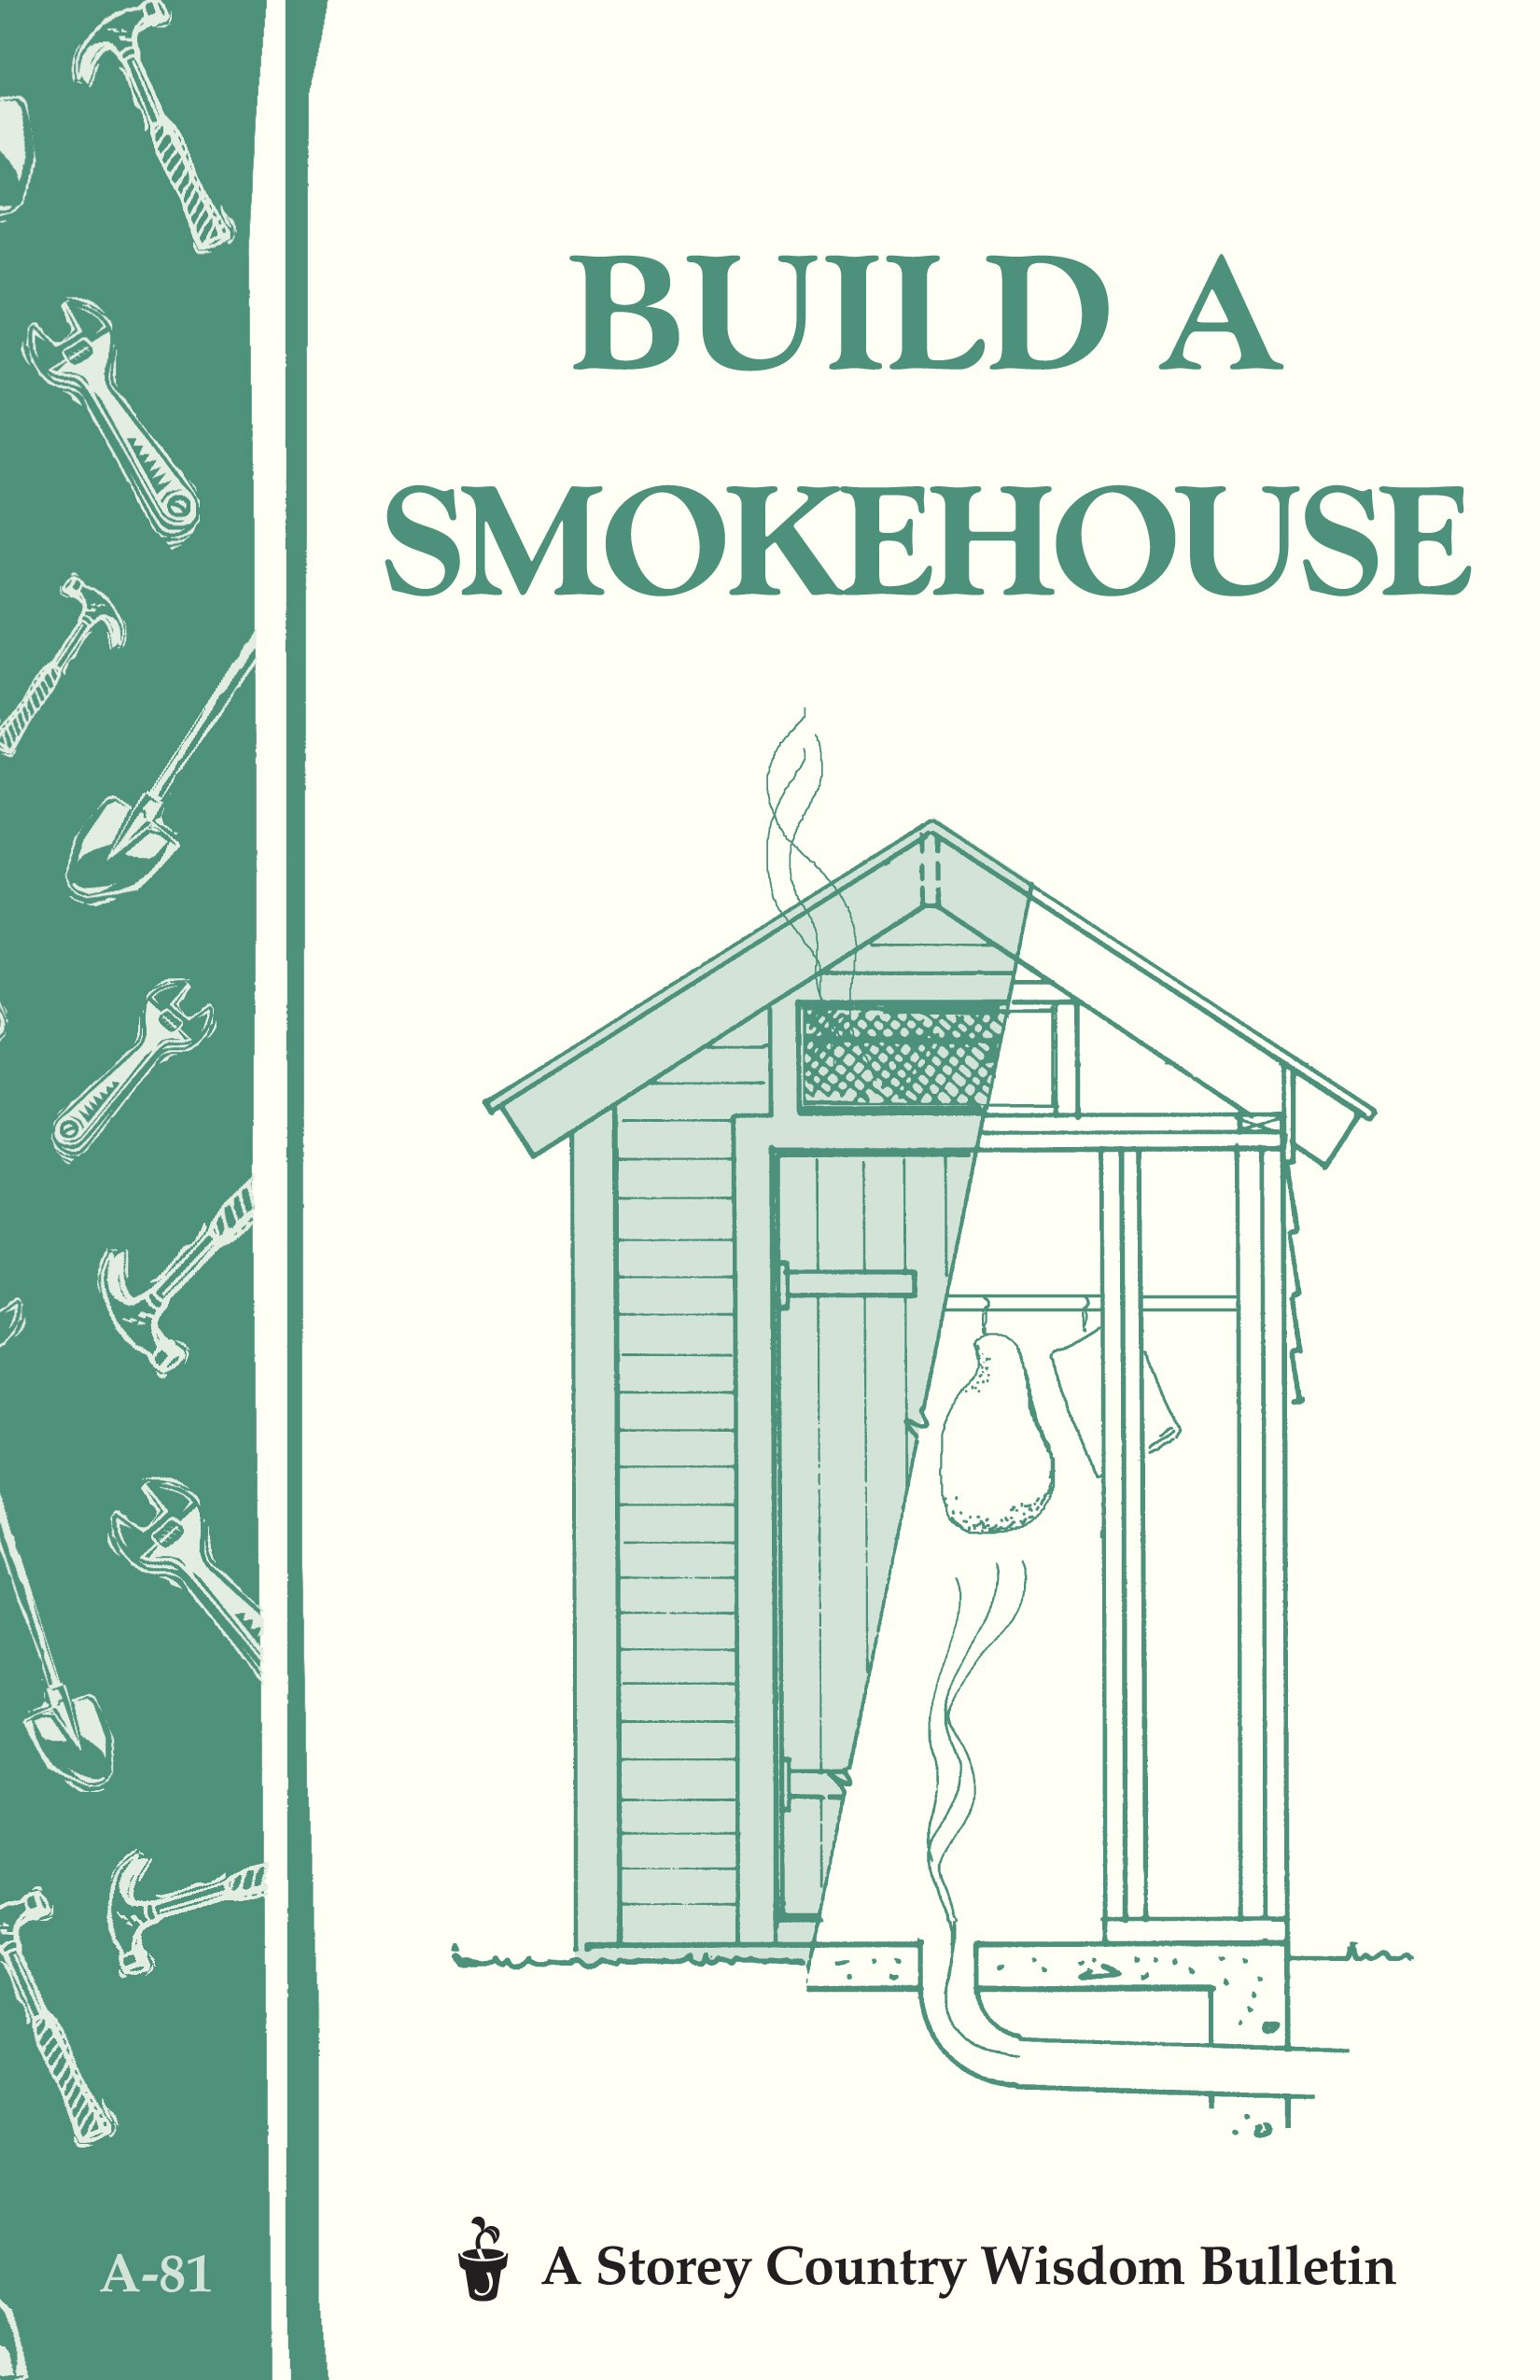 Build a Smokehouse: Storey Country Wisdom Bulletin A-81: Ed Epstein on old log smokehouse, old fashioned smokehouse, metal railing designs, wine bottle designs, old wood smokehouse, homemade grill designs, brick chimney top designs, bbq restaurant floor plans designs, old smokehouse bacon, old smokehouse drawing, 1700 s stationery paper designs, old time smokehouse, jack in the box designs, old smokehouse bar b que, old meat smokehouse, old wooden smokehouses,